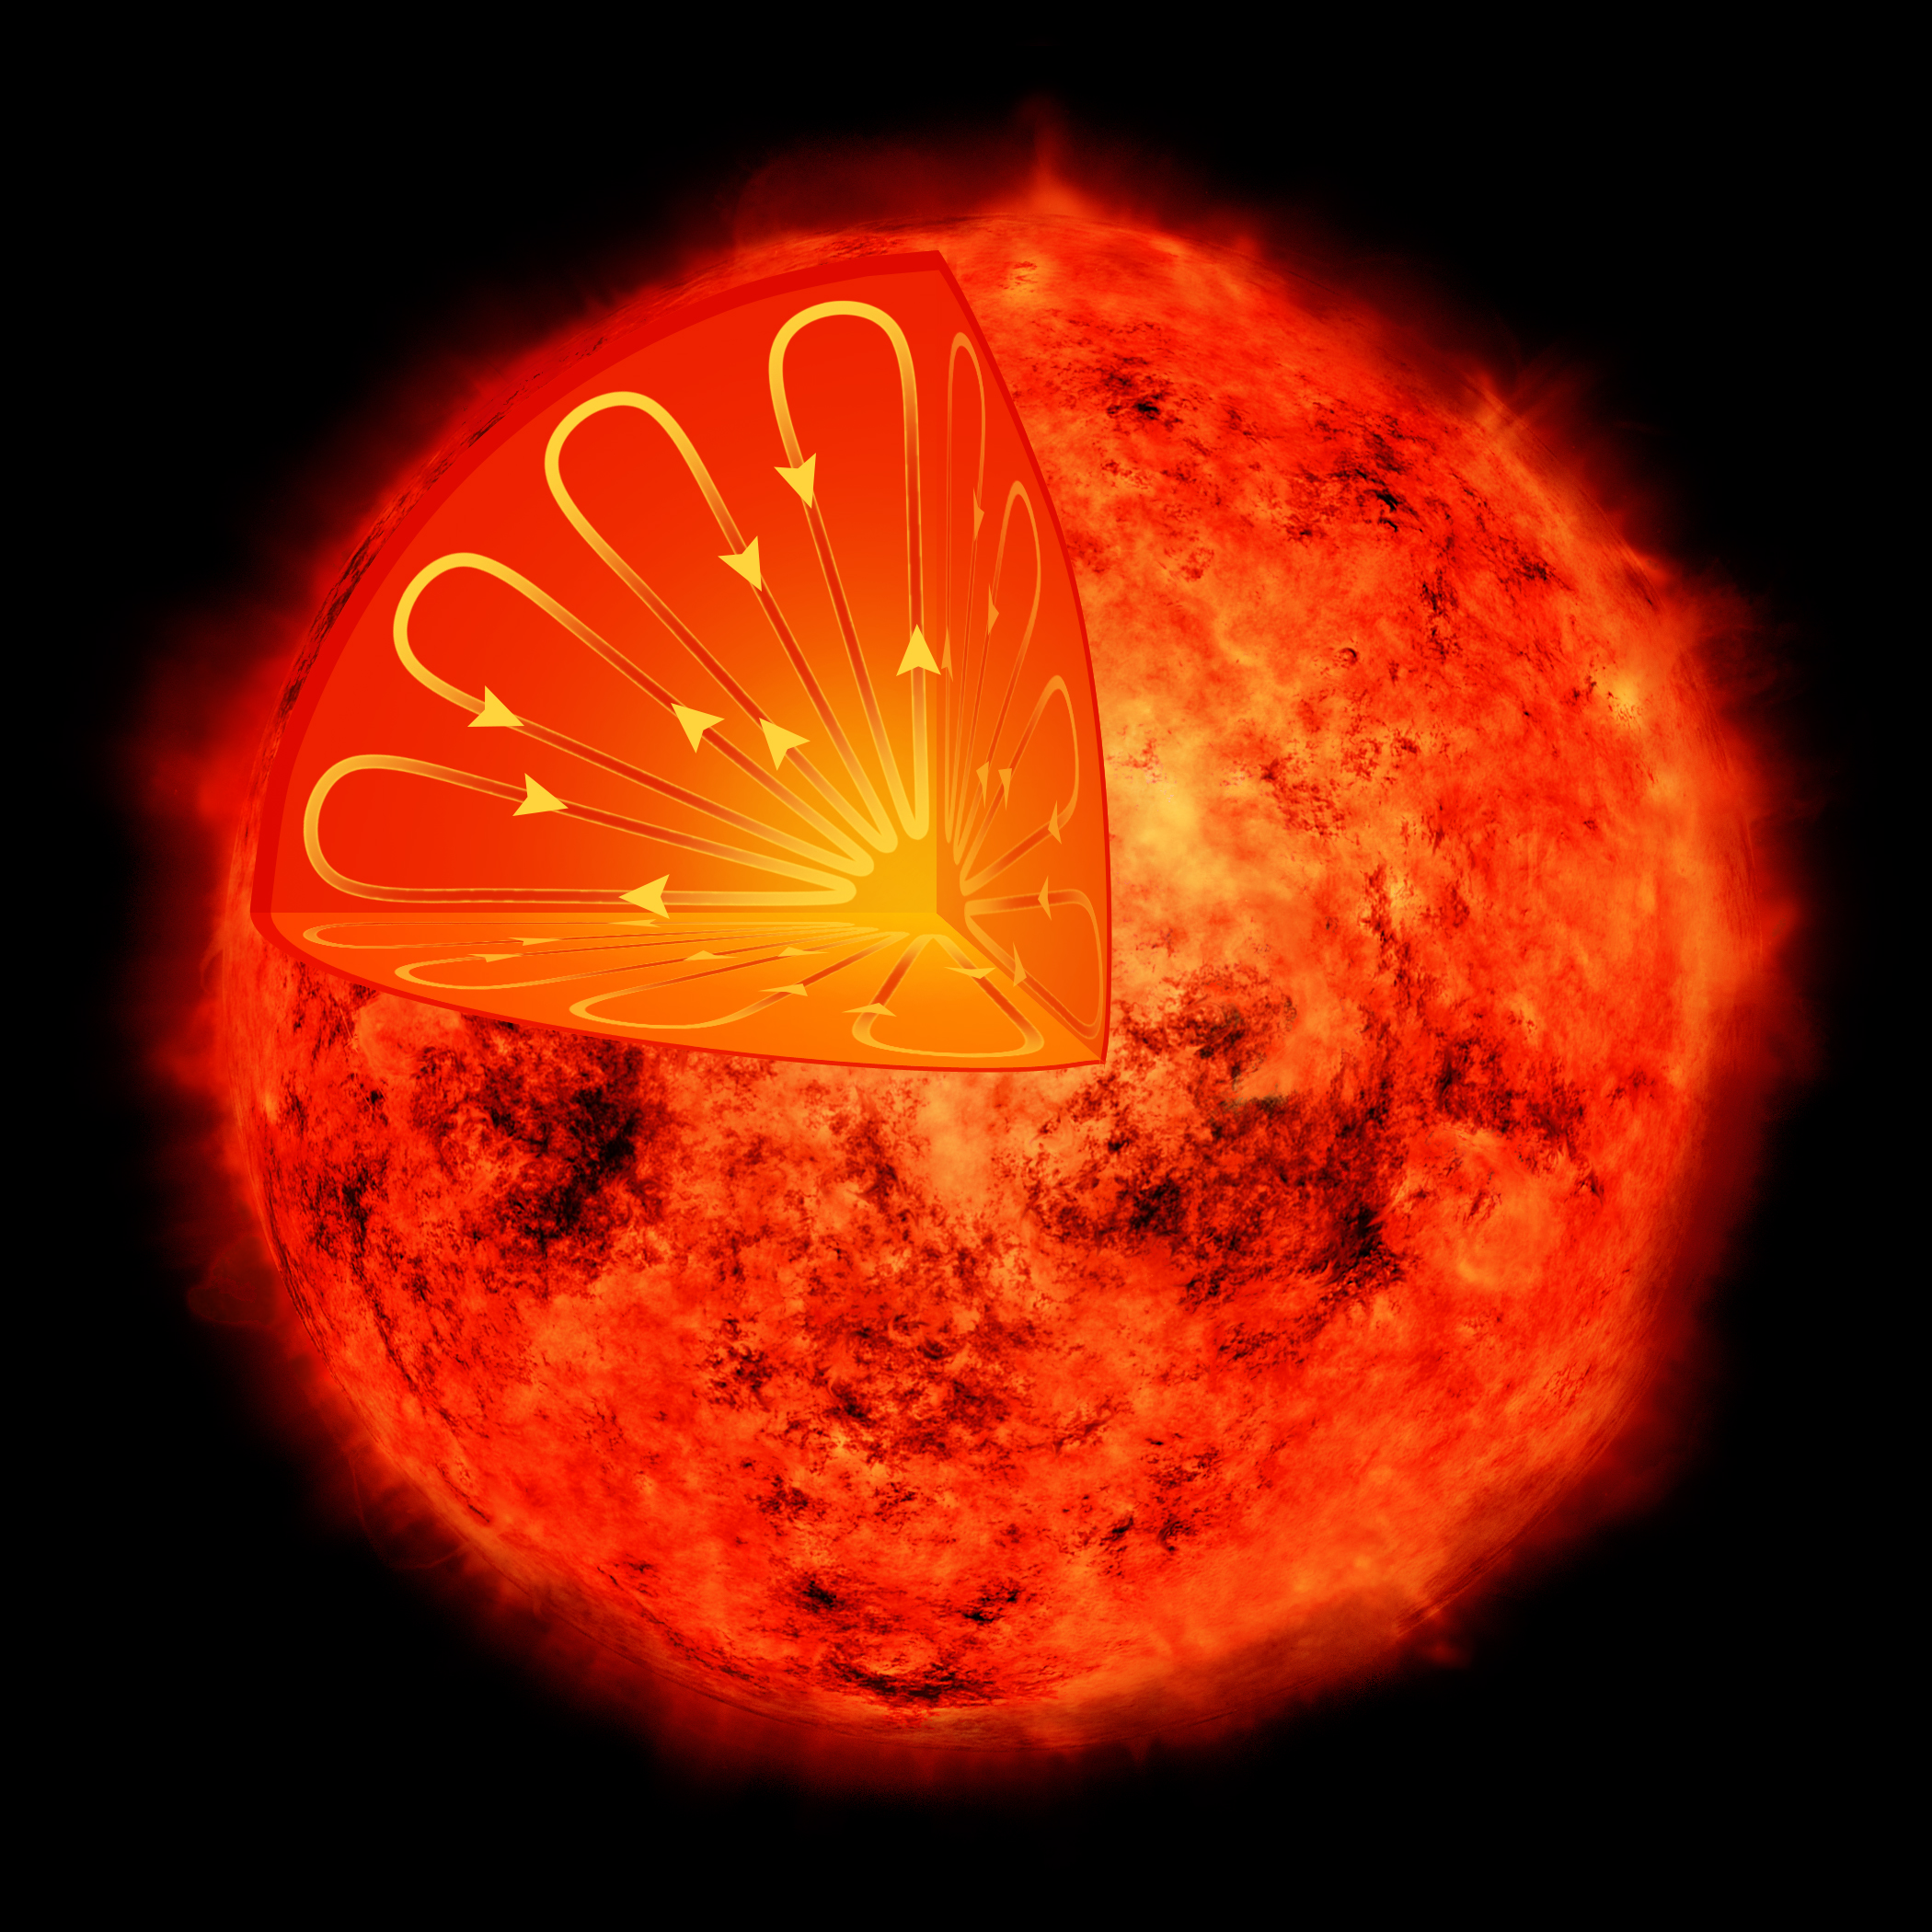 An artist's illustration depicts the interior of a low-mass star, such as the one seen in an X-ray image from Chandra in the inset. Such stars have different interior structures than our Sun. A new study looking at four of these low-mass stars shows the strength of magnetic fields of these stars - which is revealed by the amount of X-ray emission from the stars - are similar to those of more massive ones like the Sun. This discovery may have profound implications for understanding how the magnetic field in the Sun and stars like it are generated.